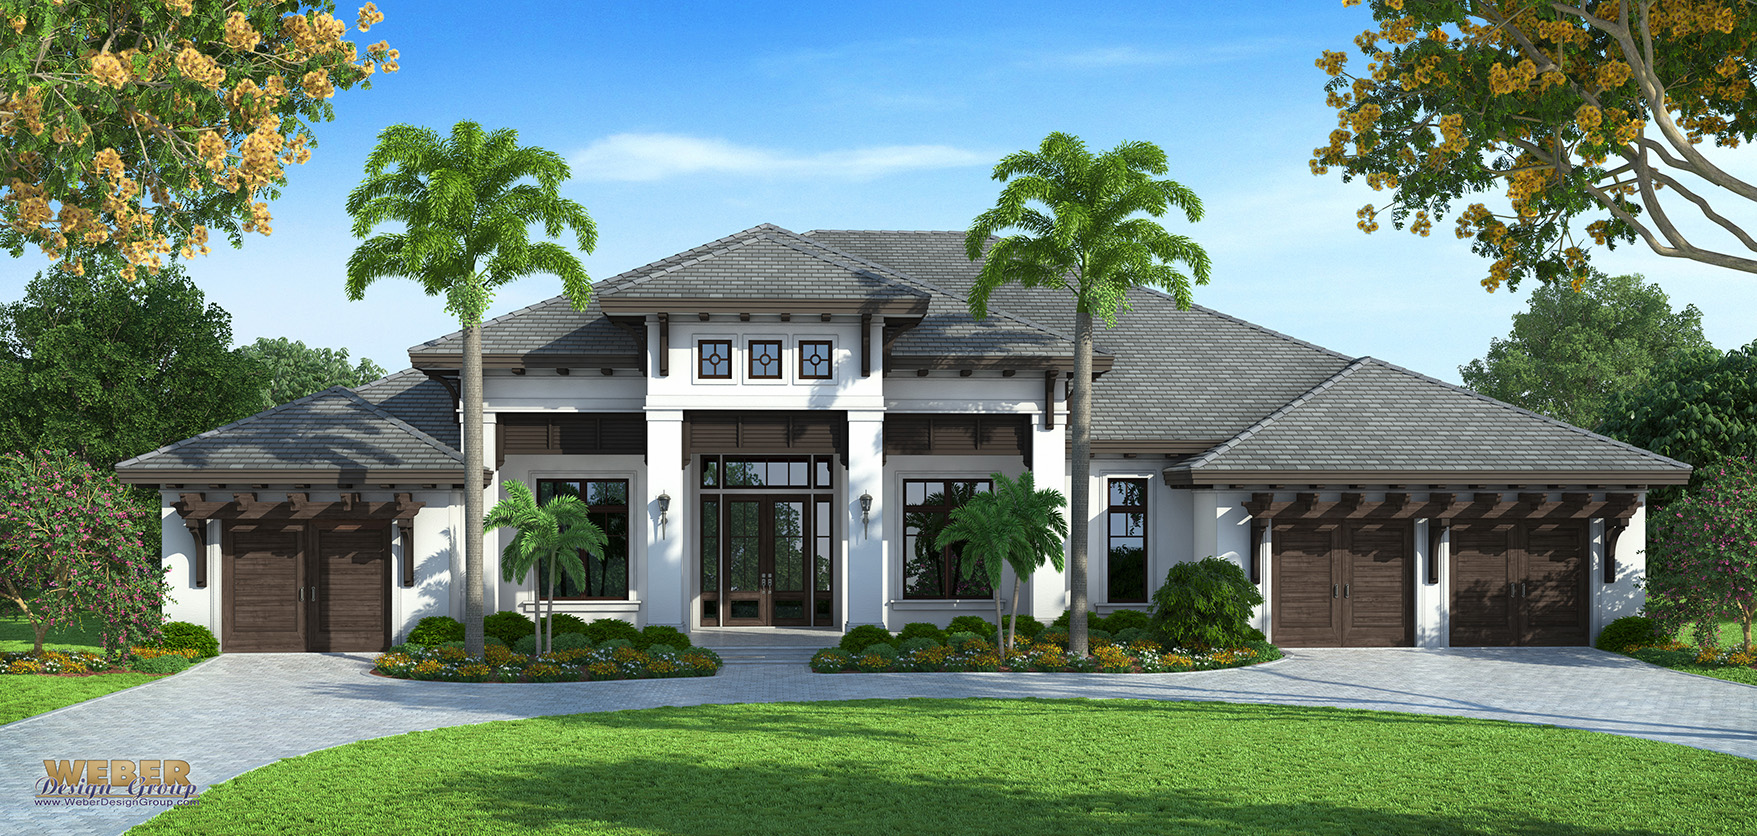 Caribbean house plans caribbean style architecture for Caribbean home plans